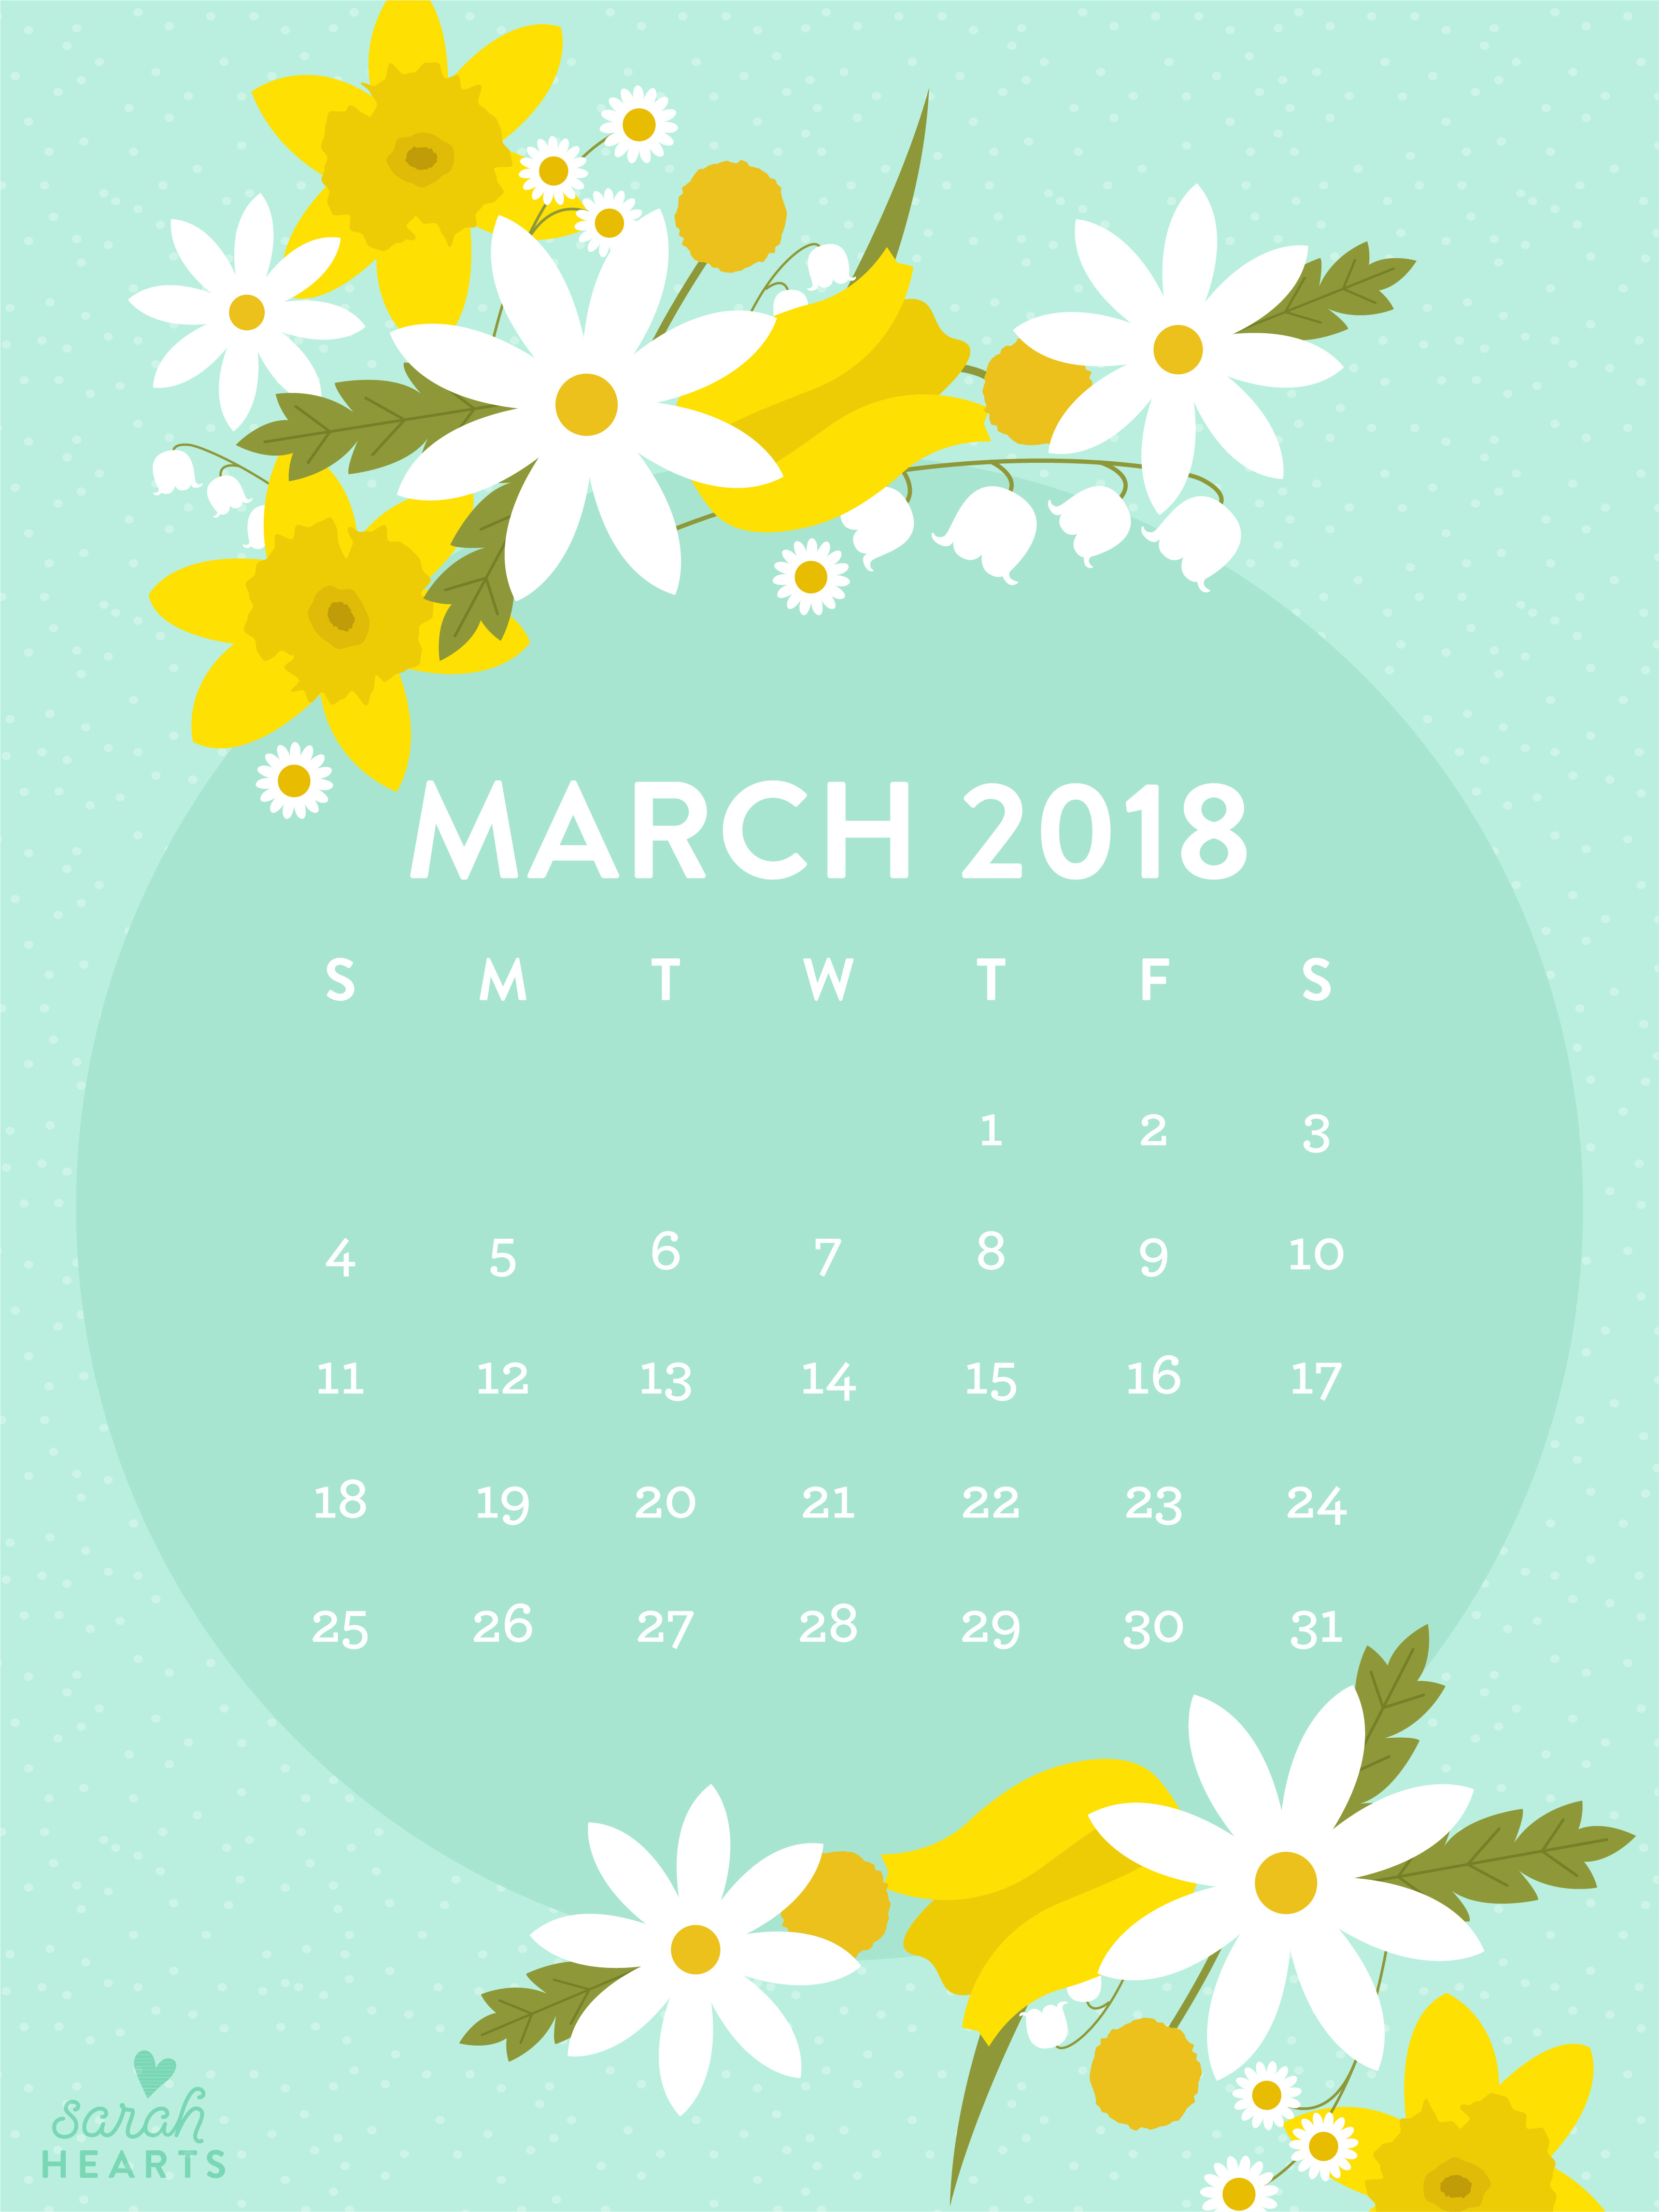 Calendar Wallpaper Ipad : March spring flower calendar wallpaper sarah hearts